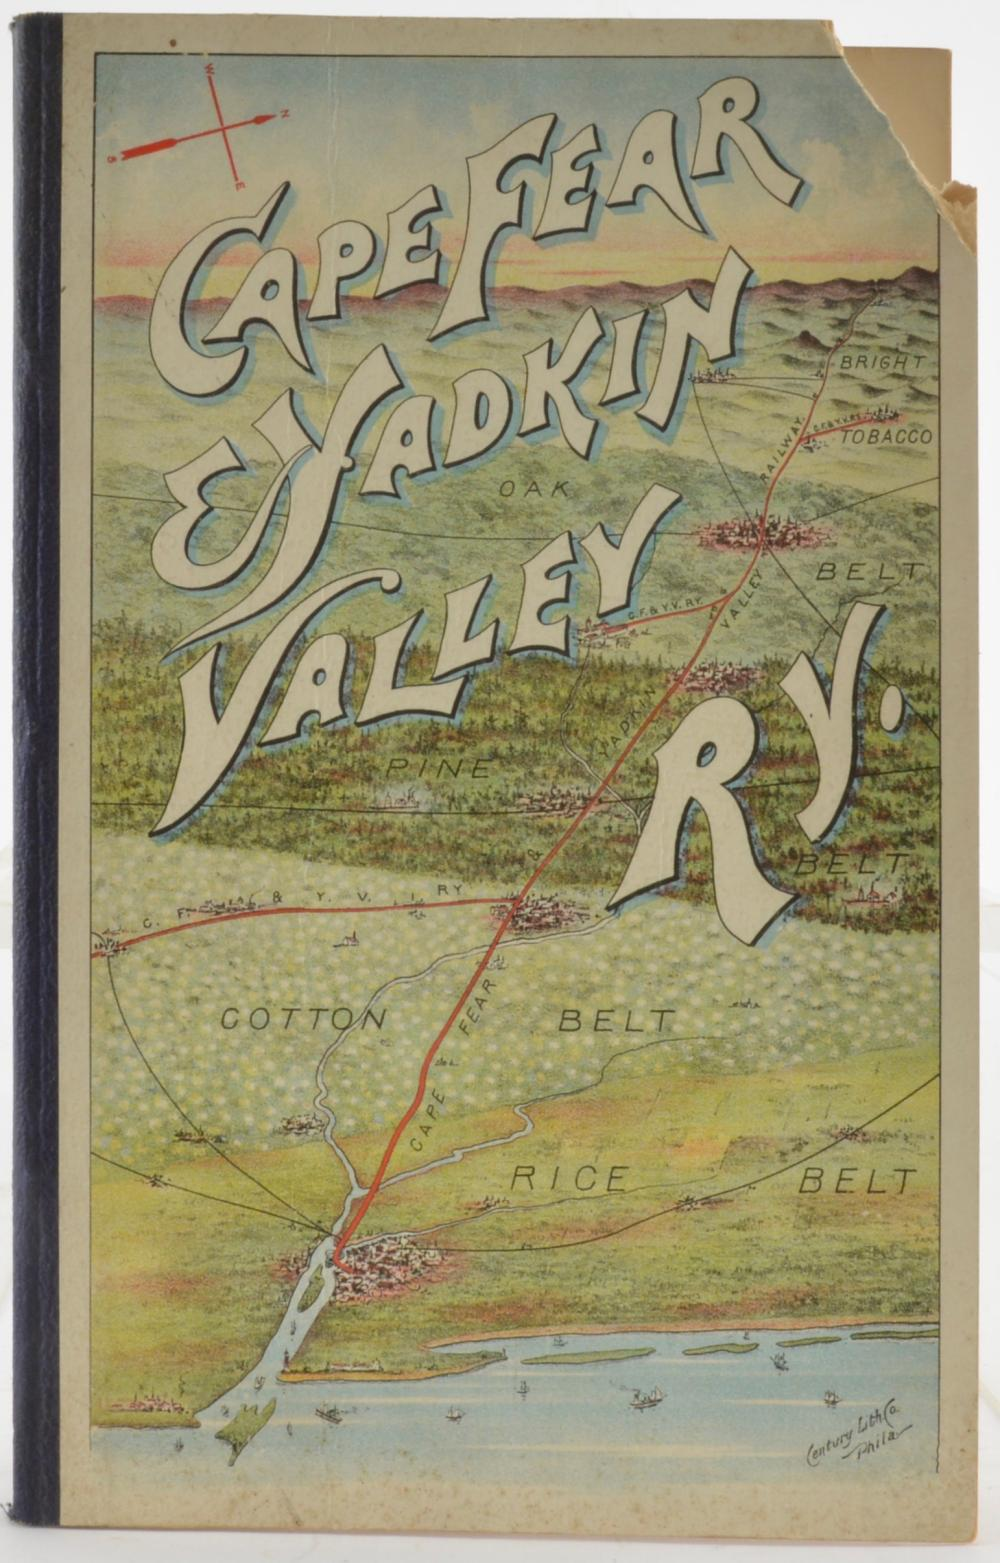 1889 The Cape Fear And Yadkin Valley NC Railway History Book Yadkin Valley Map on yadkin valley winery events, warrior map, eastern coast map, globe map, northern neck map, salisbury map, waynesville map, crystal coast map, dfw metroplex map, granite falls map, patterson map, greater seattle area map, yadkin valley nc, yadkin valley telephone, sparta map,